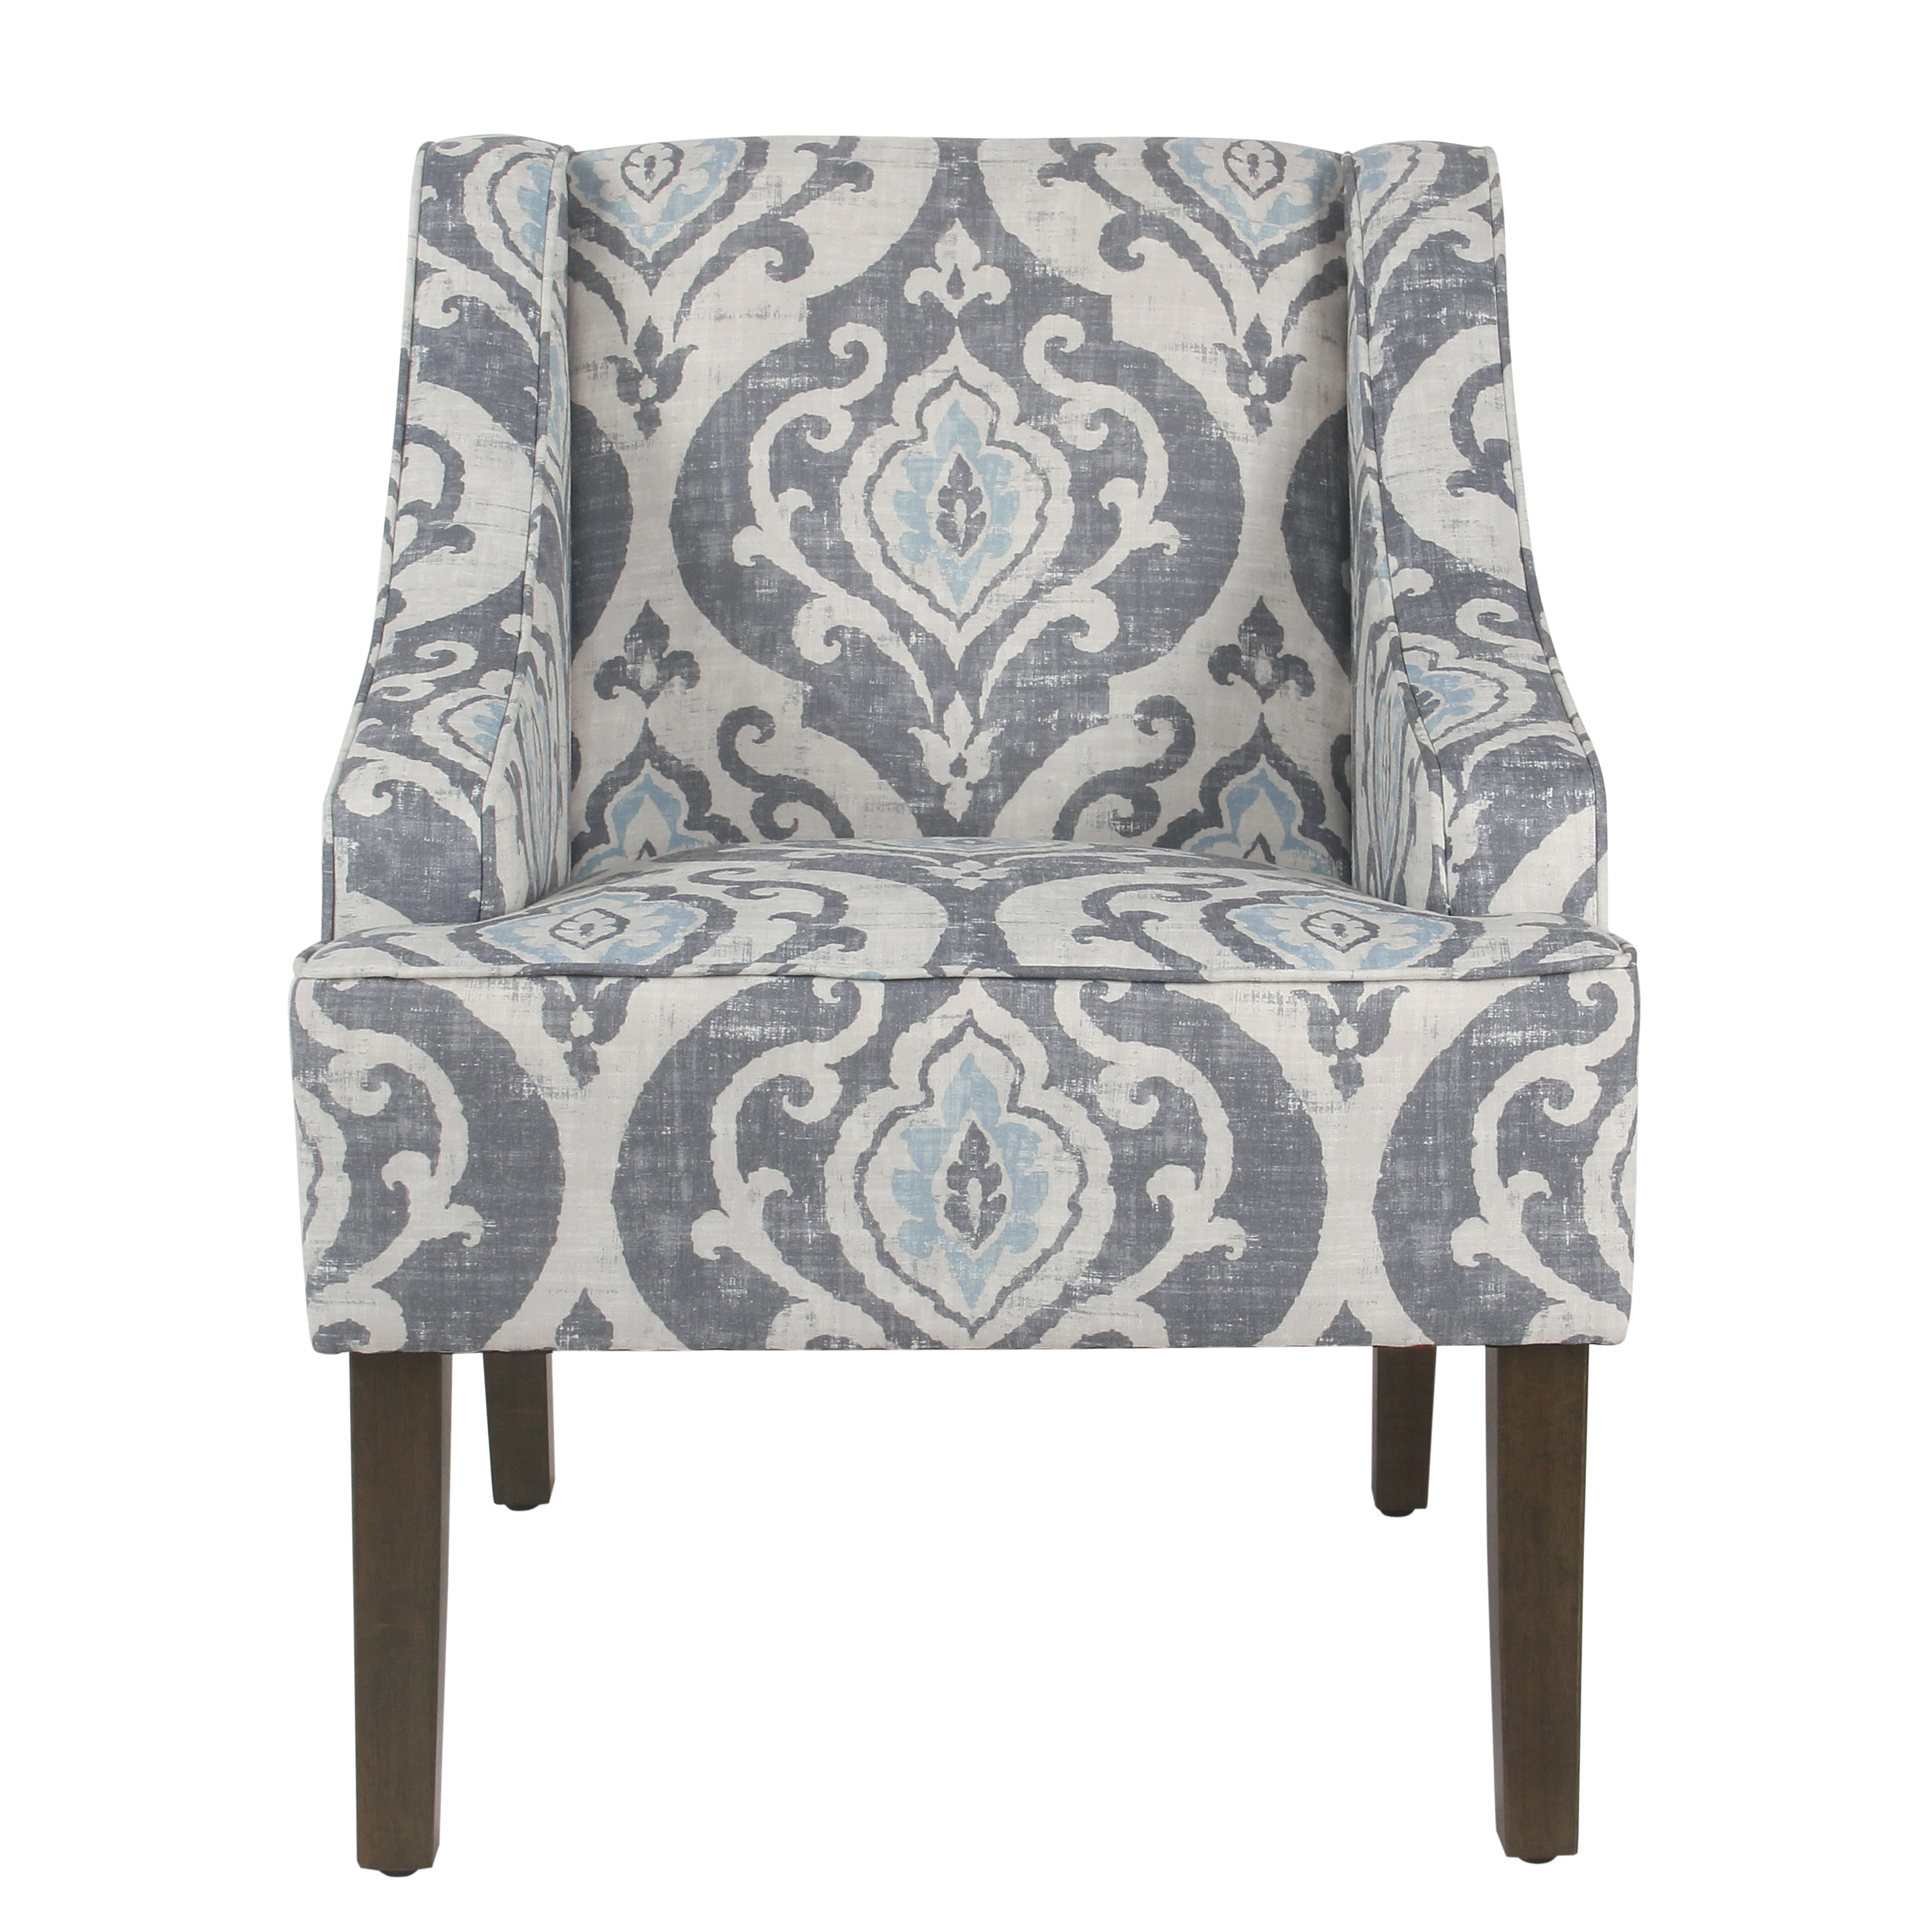 HomePop Classic Swoop Accent Chair, Multiple Colors